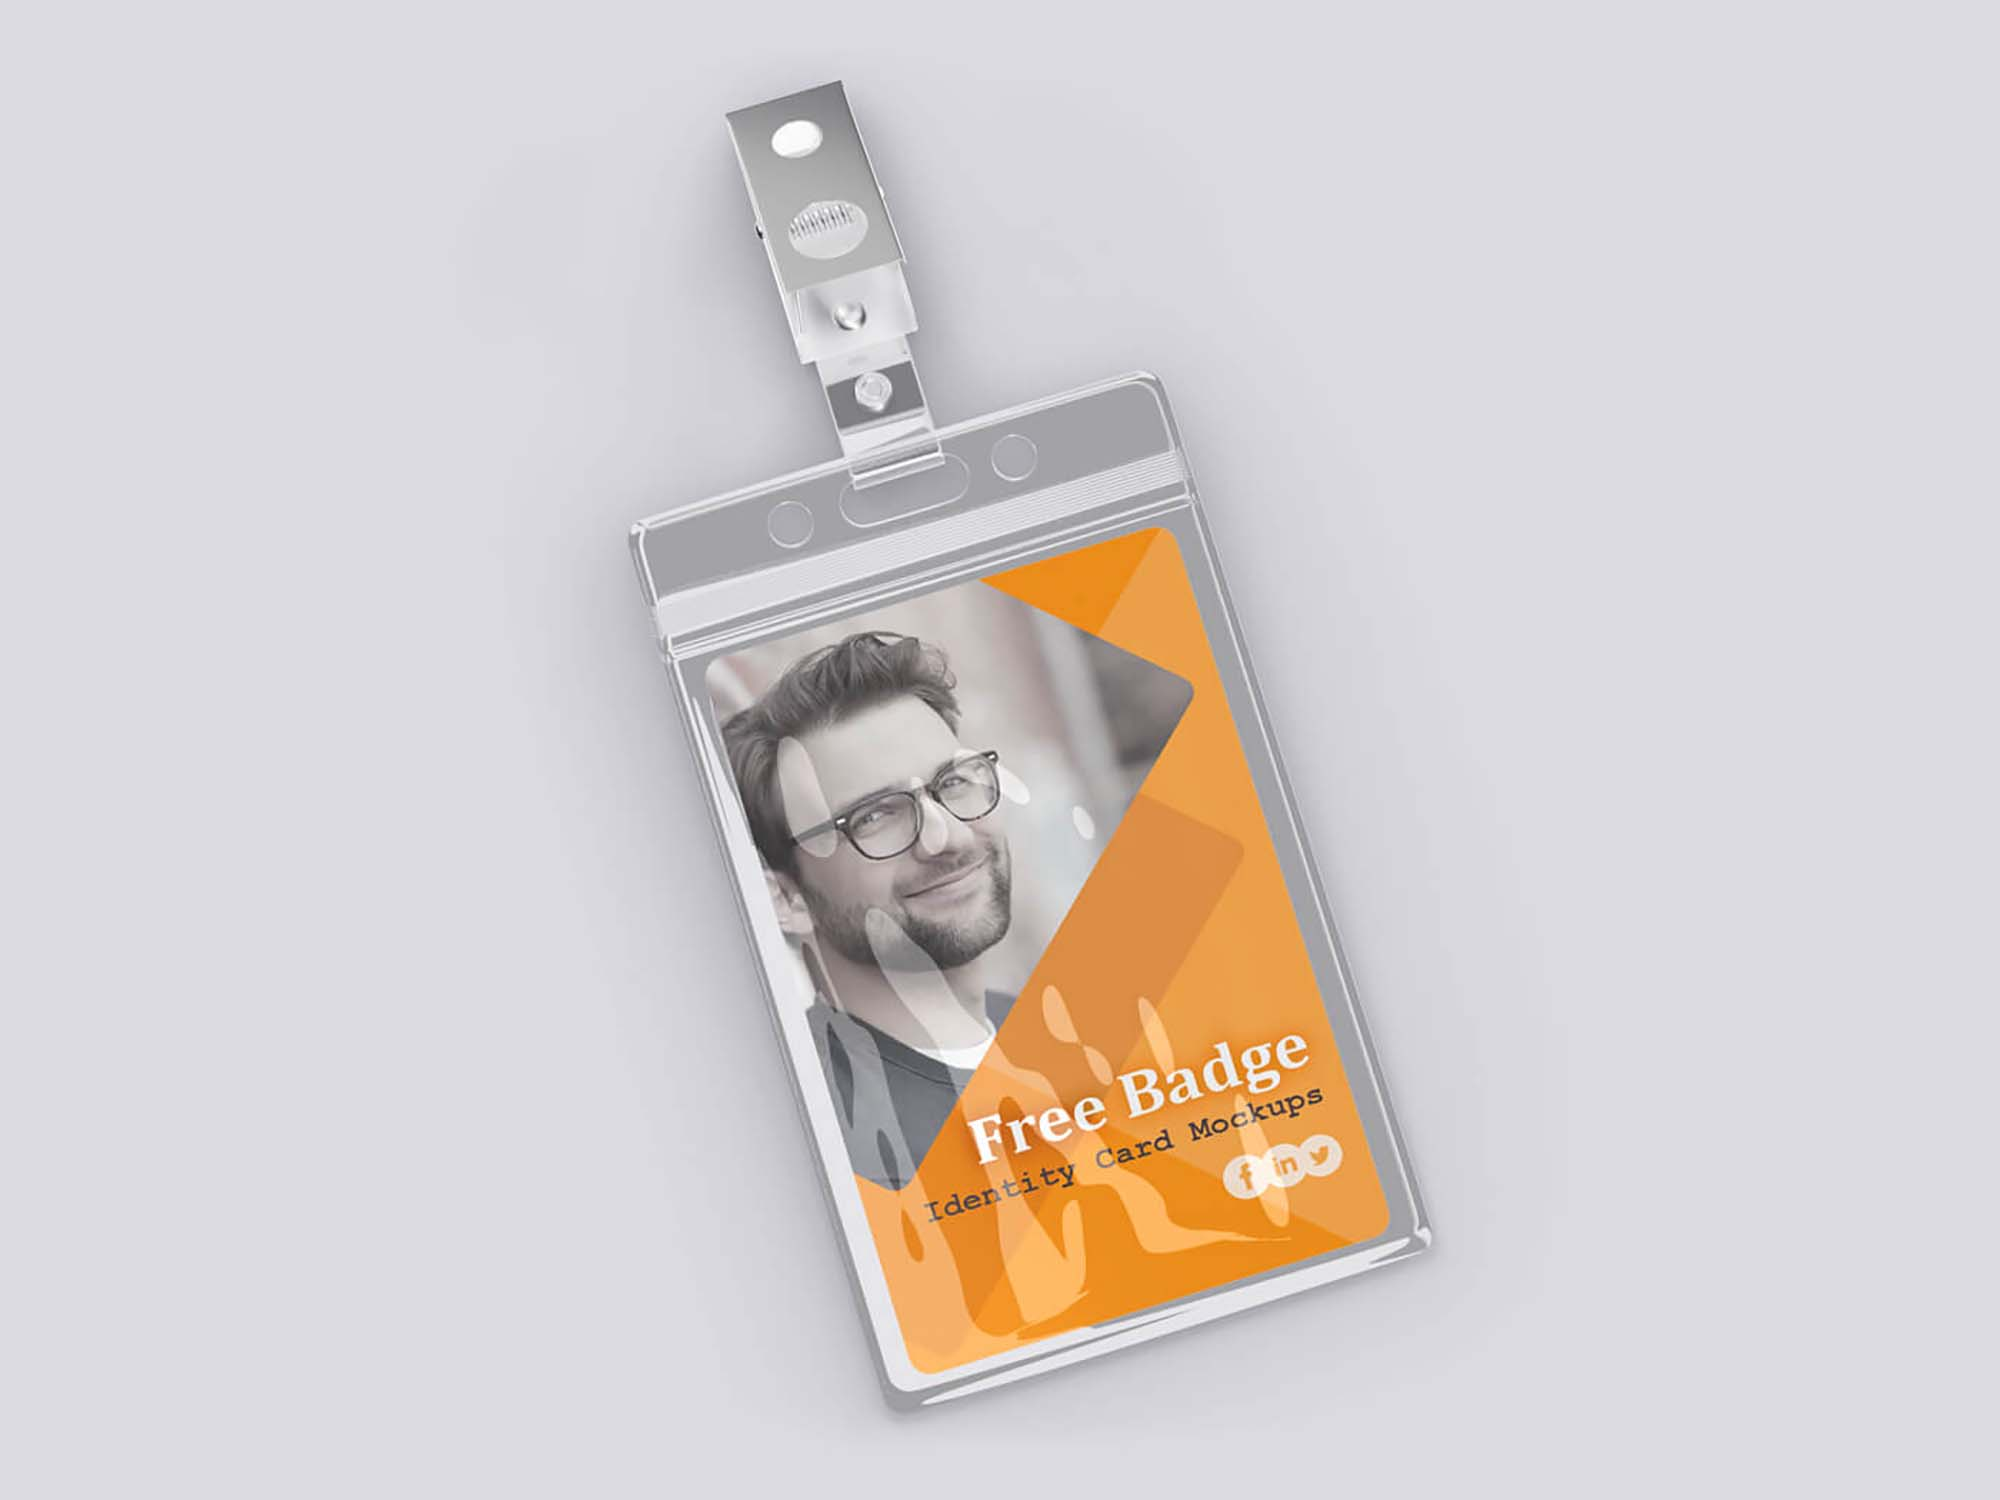 Badge Identity Card Mockup 2